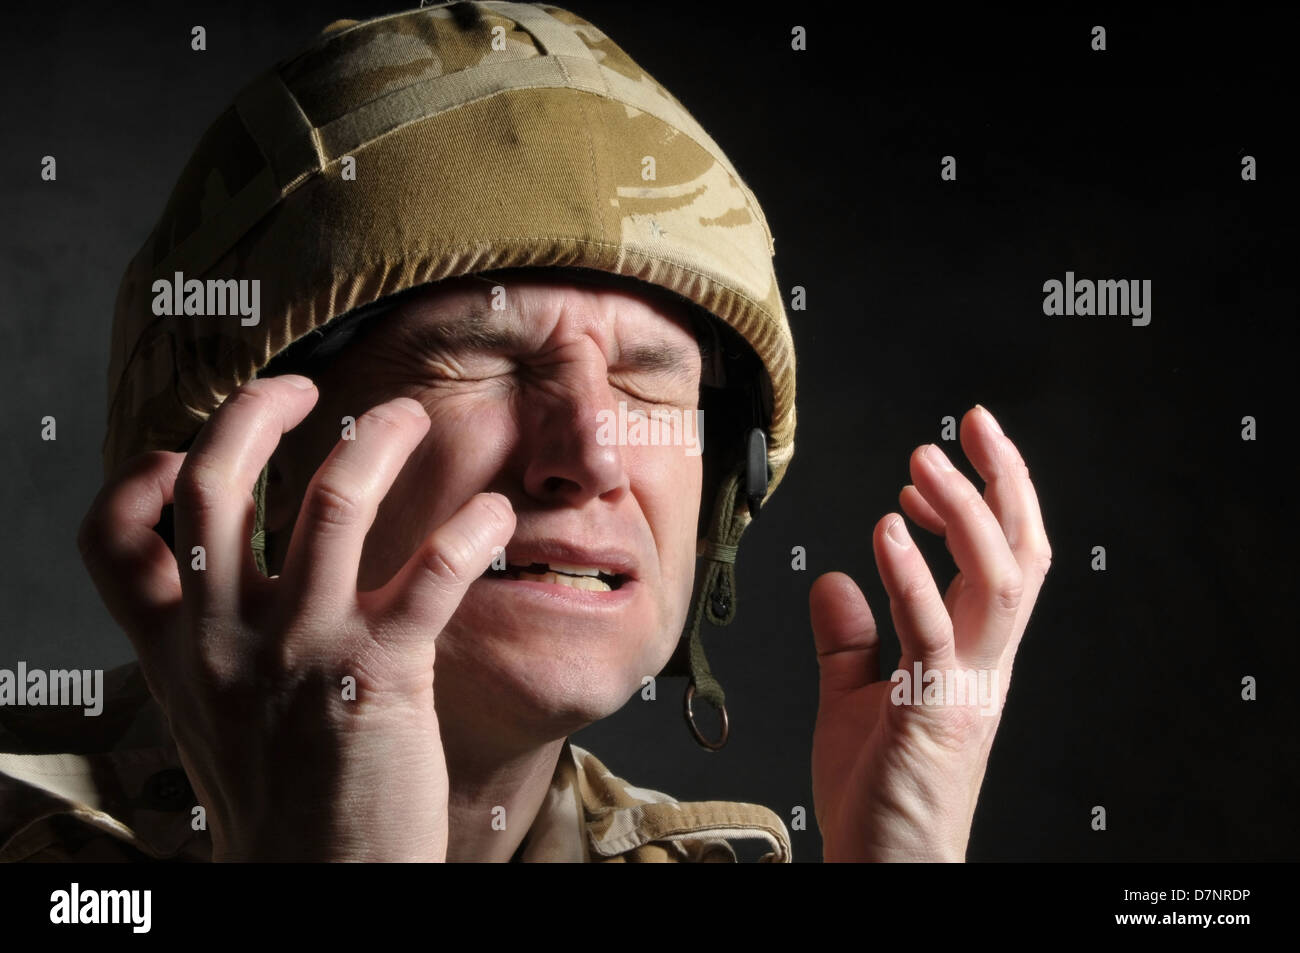 British soldier suffering from shell shock/PTSD, against a black background. - Stock Image